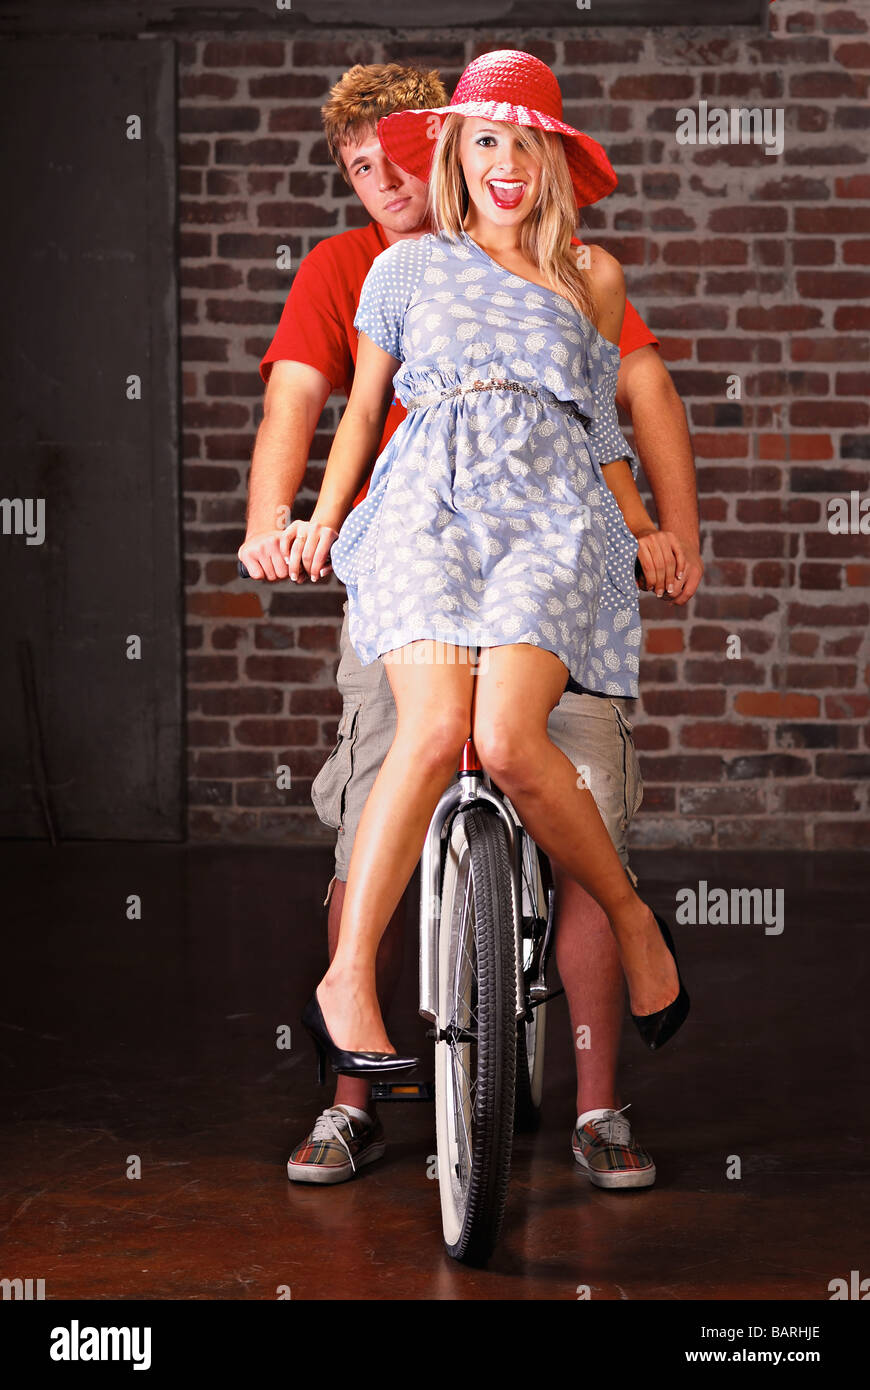 Teenage couple playing around on a bicycle Stock Photo